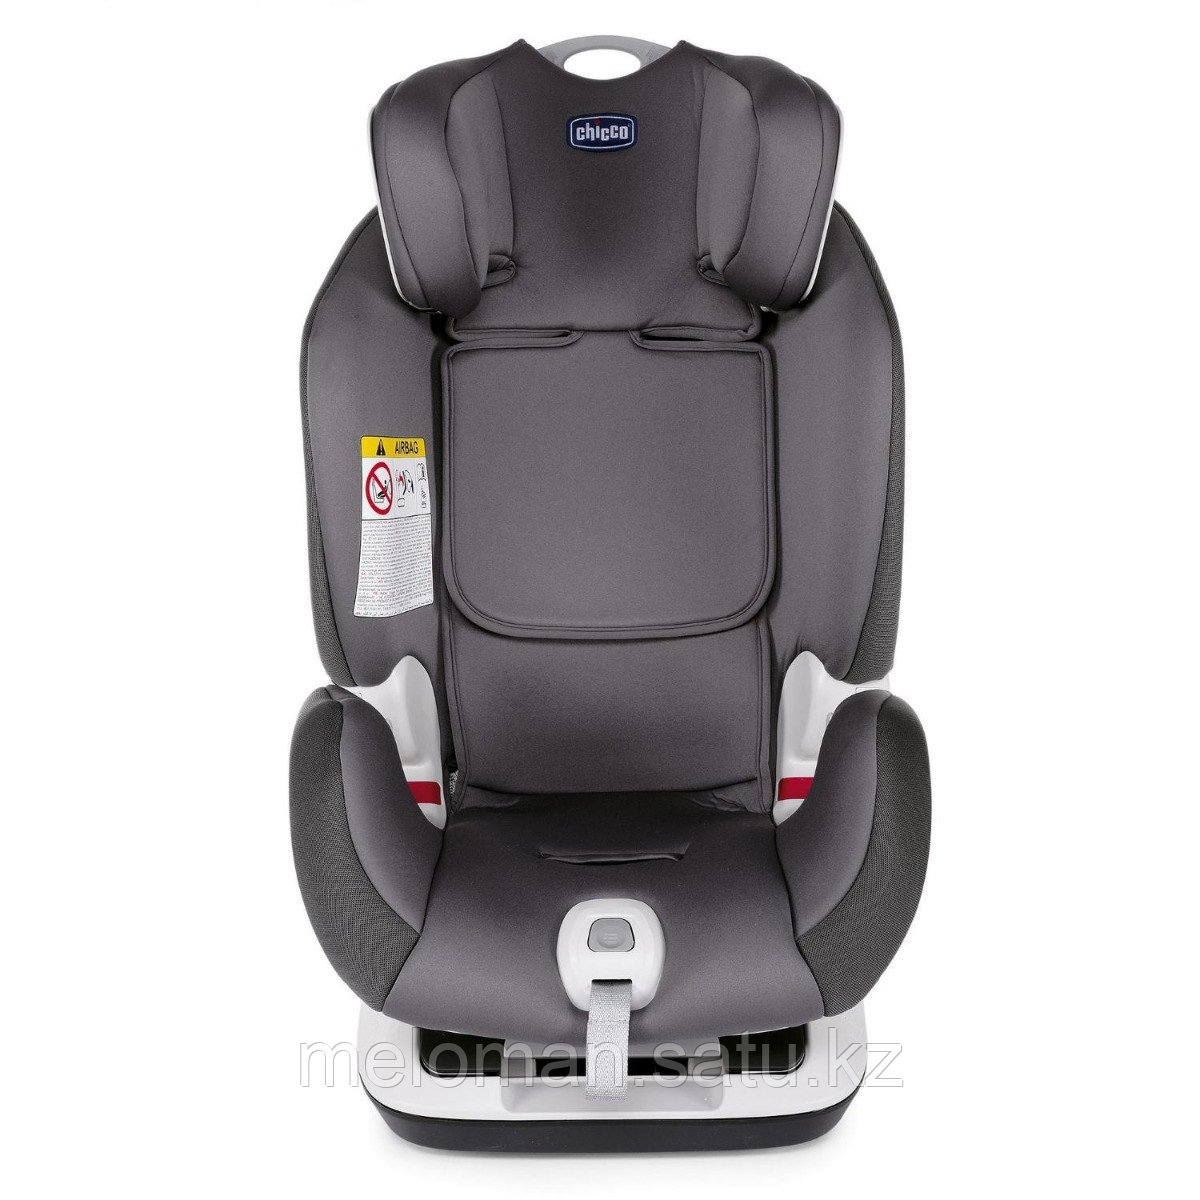 Chicco: Автокресло Seat Up 012 Pearl (0-25 kg) 0+ - фото 5